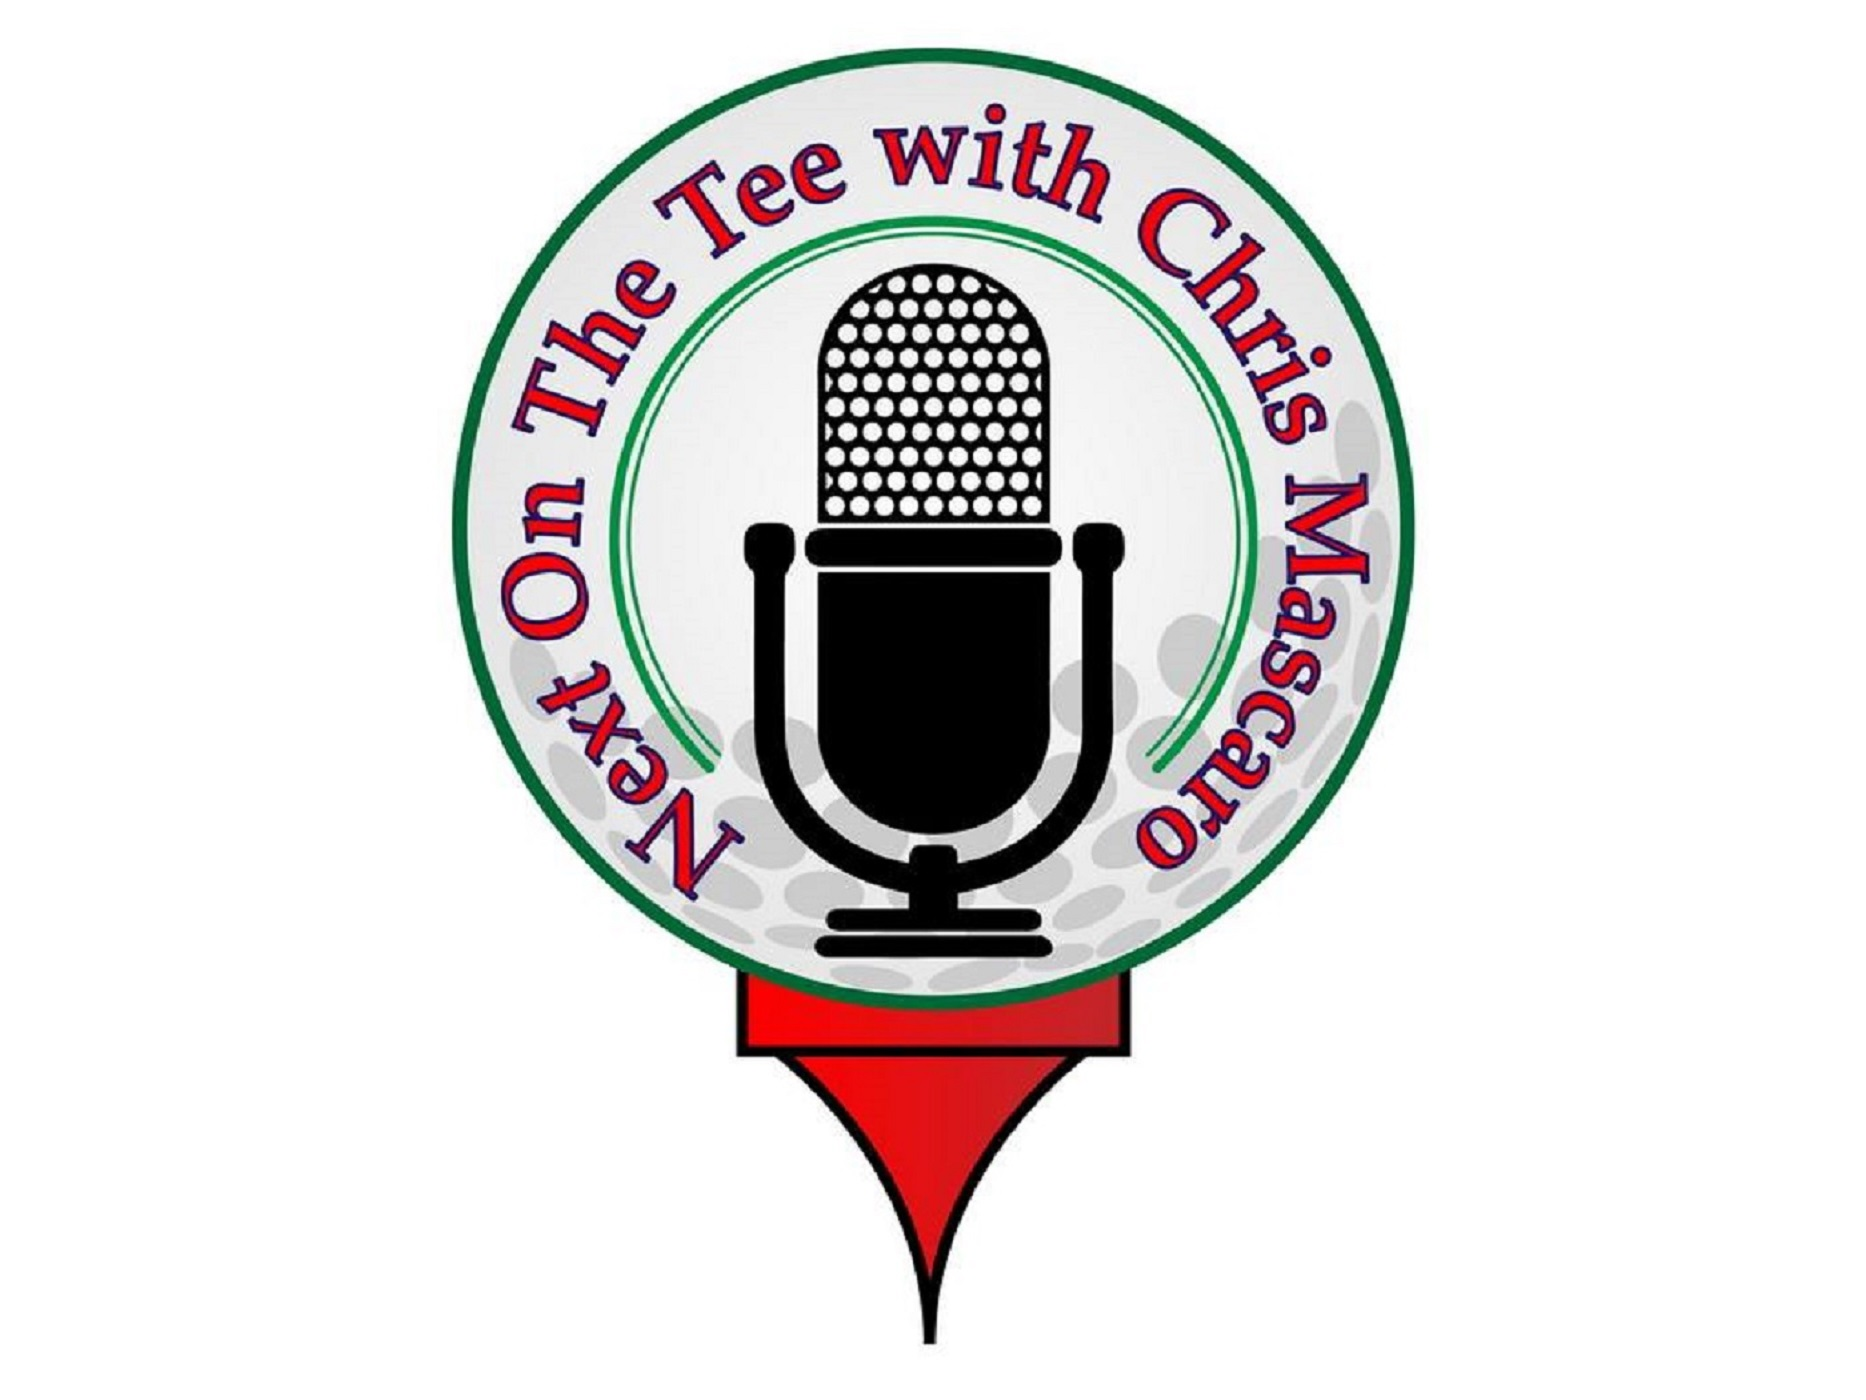 Next on the Tee with Chris Mascaro: Hear PGA & LPGA Legends, Players & Top Instructors Sharing Their Stories, Insights & Playing Lessons To Help Lower Your Scores.